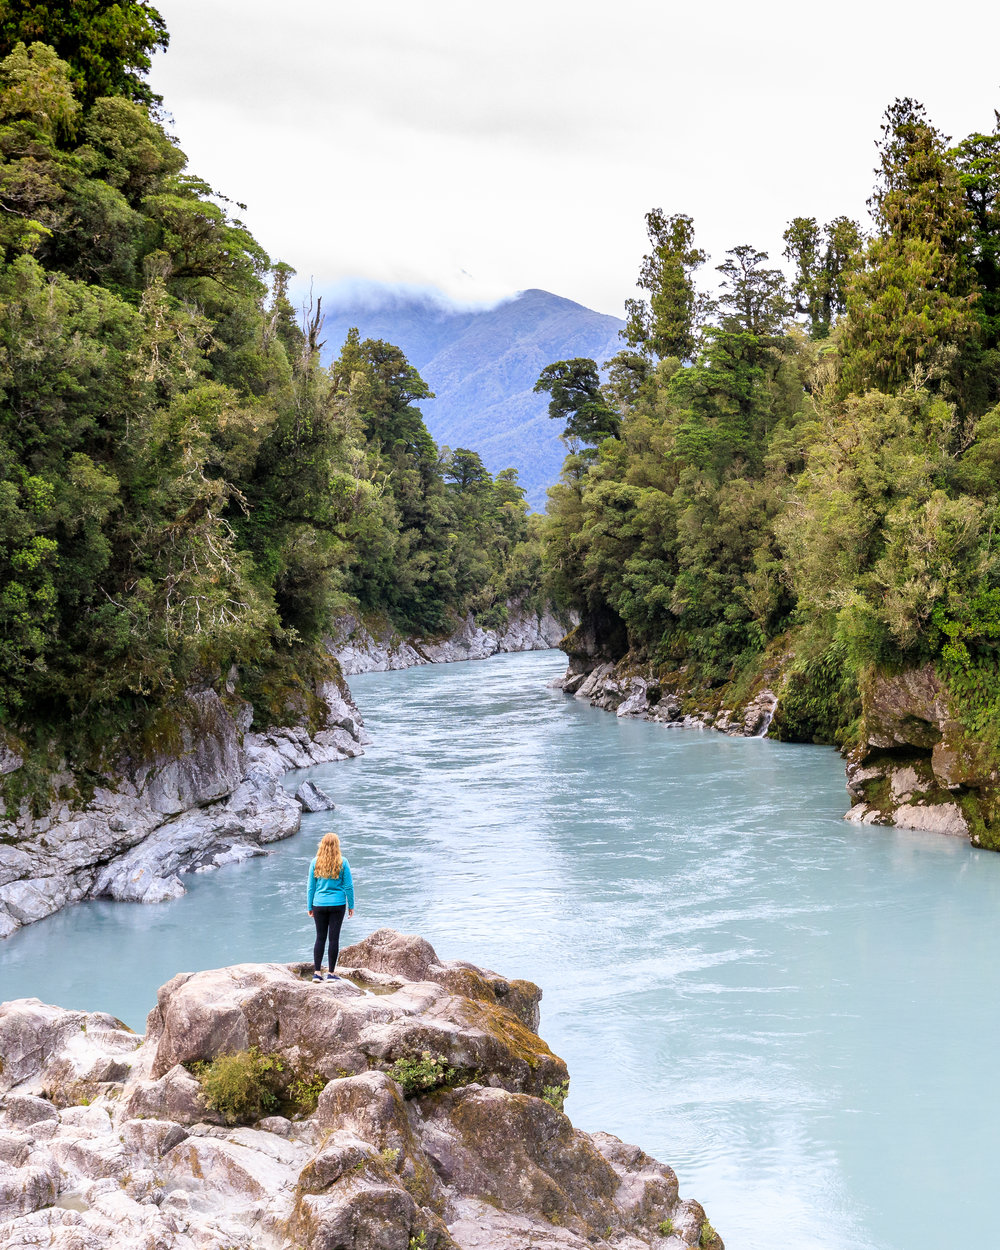 Hokitika Gorge on the West Coast of the South Island of New Zealand